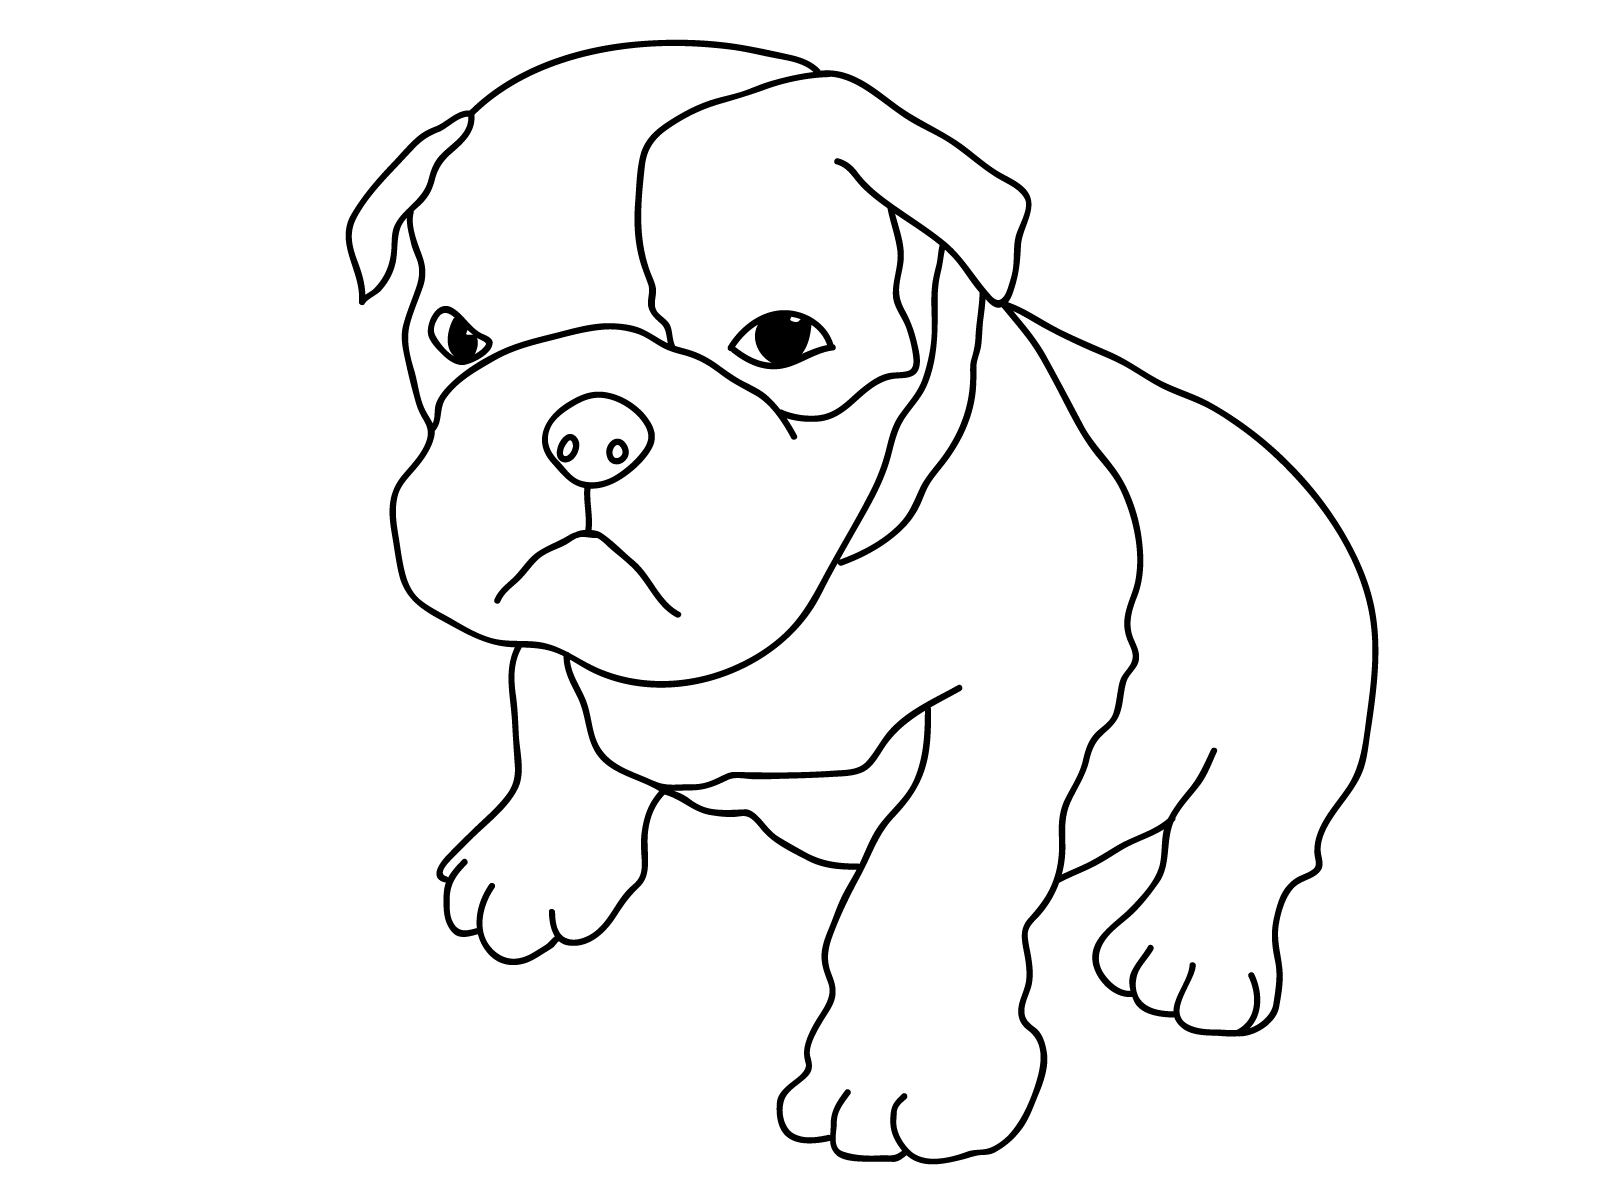 dog print out puppy coloring pages best coloring pages for kids dog print out